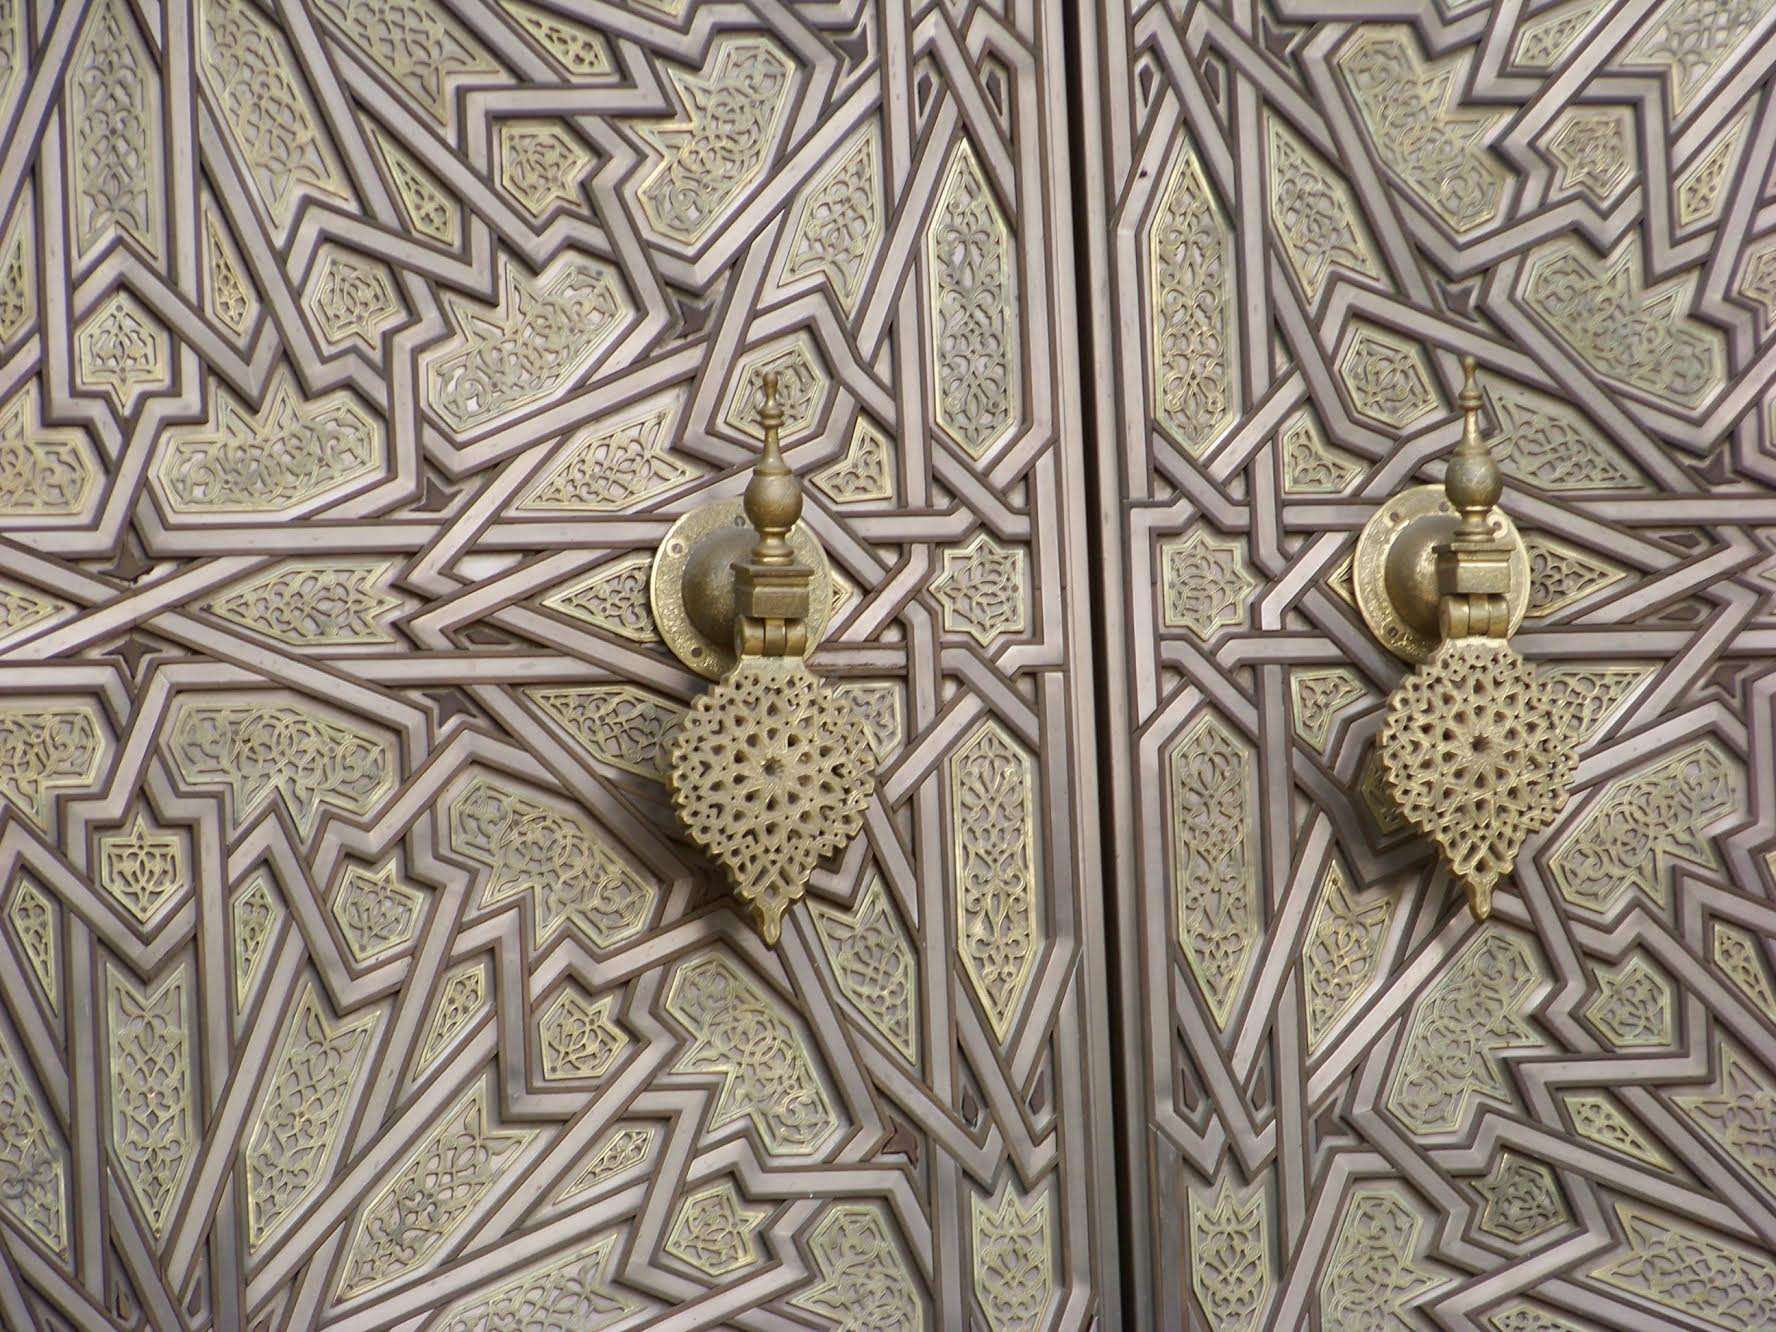 Photo by Celene BarreraPerfect set of patterns - door handles at the Moroccan president's palace in Casablanca.